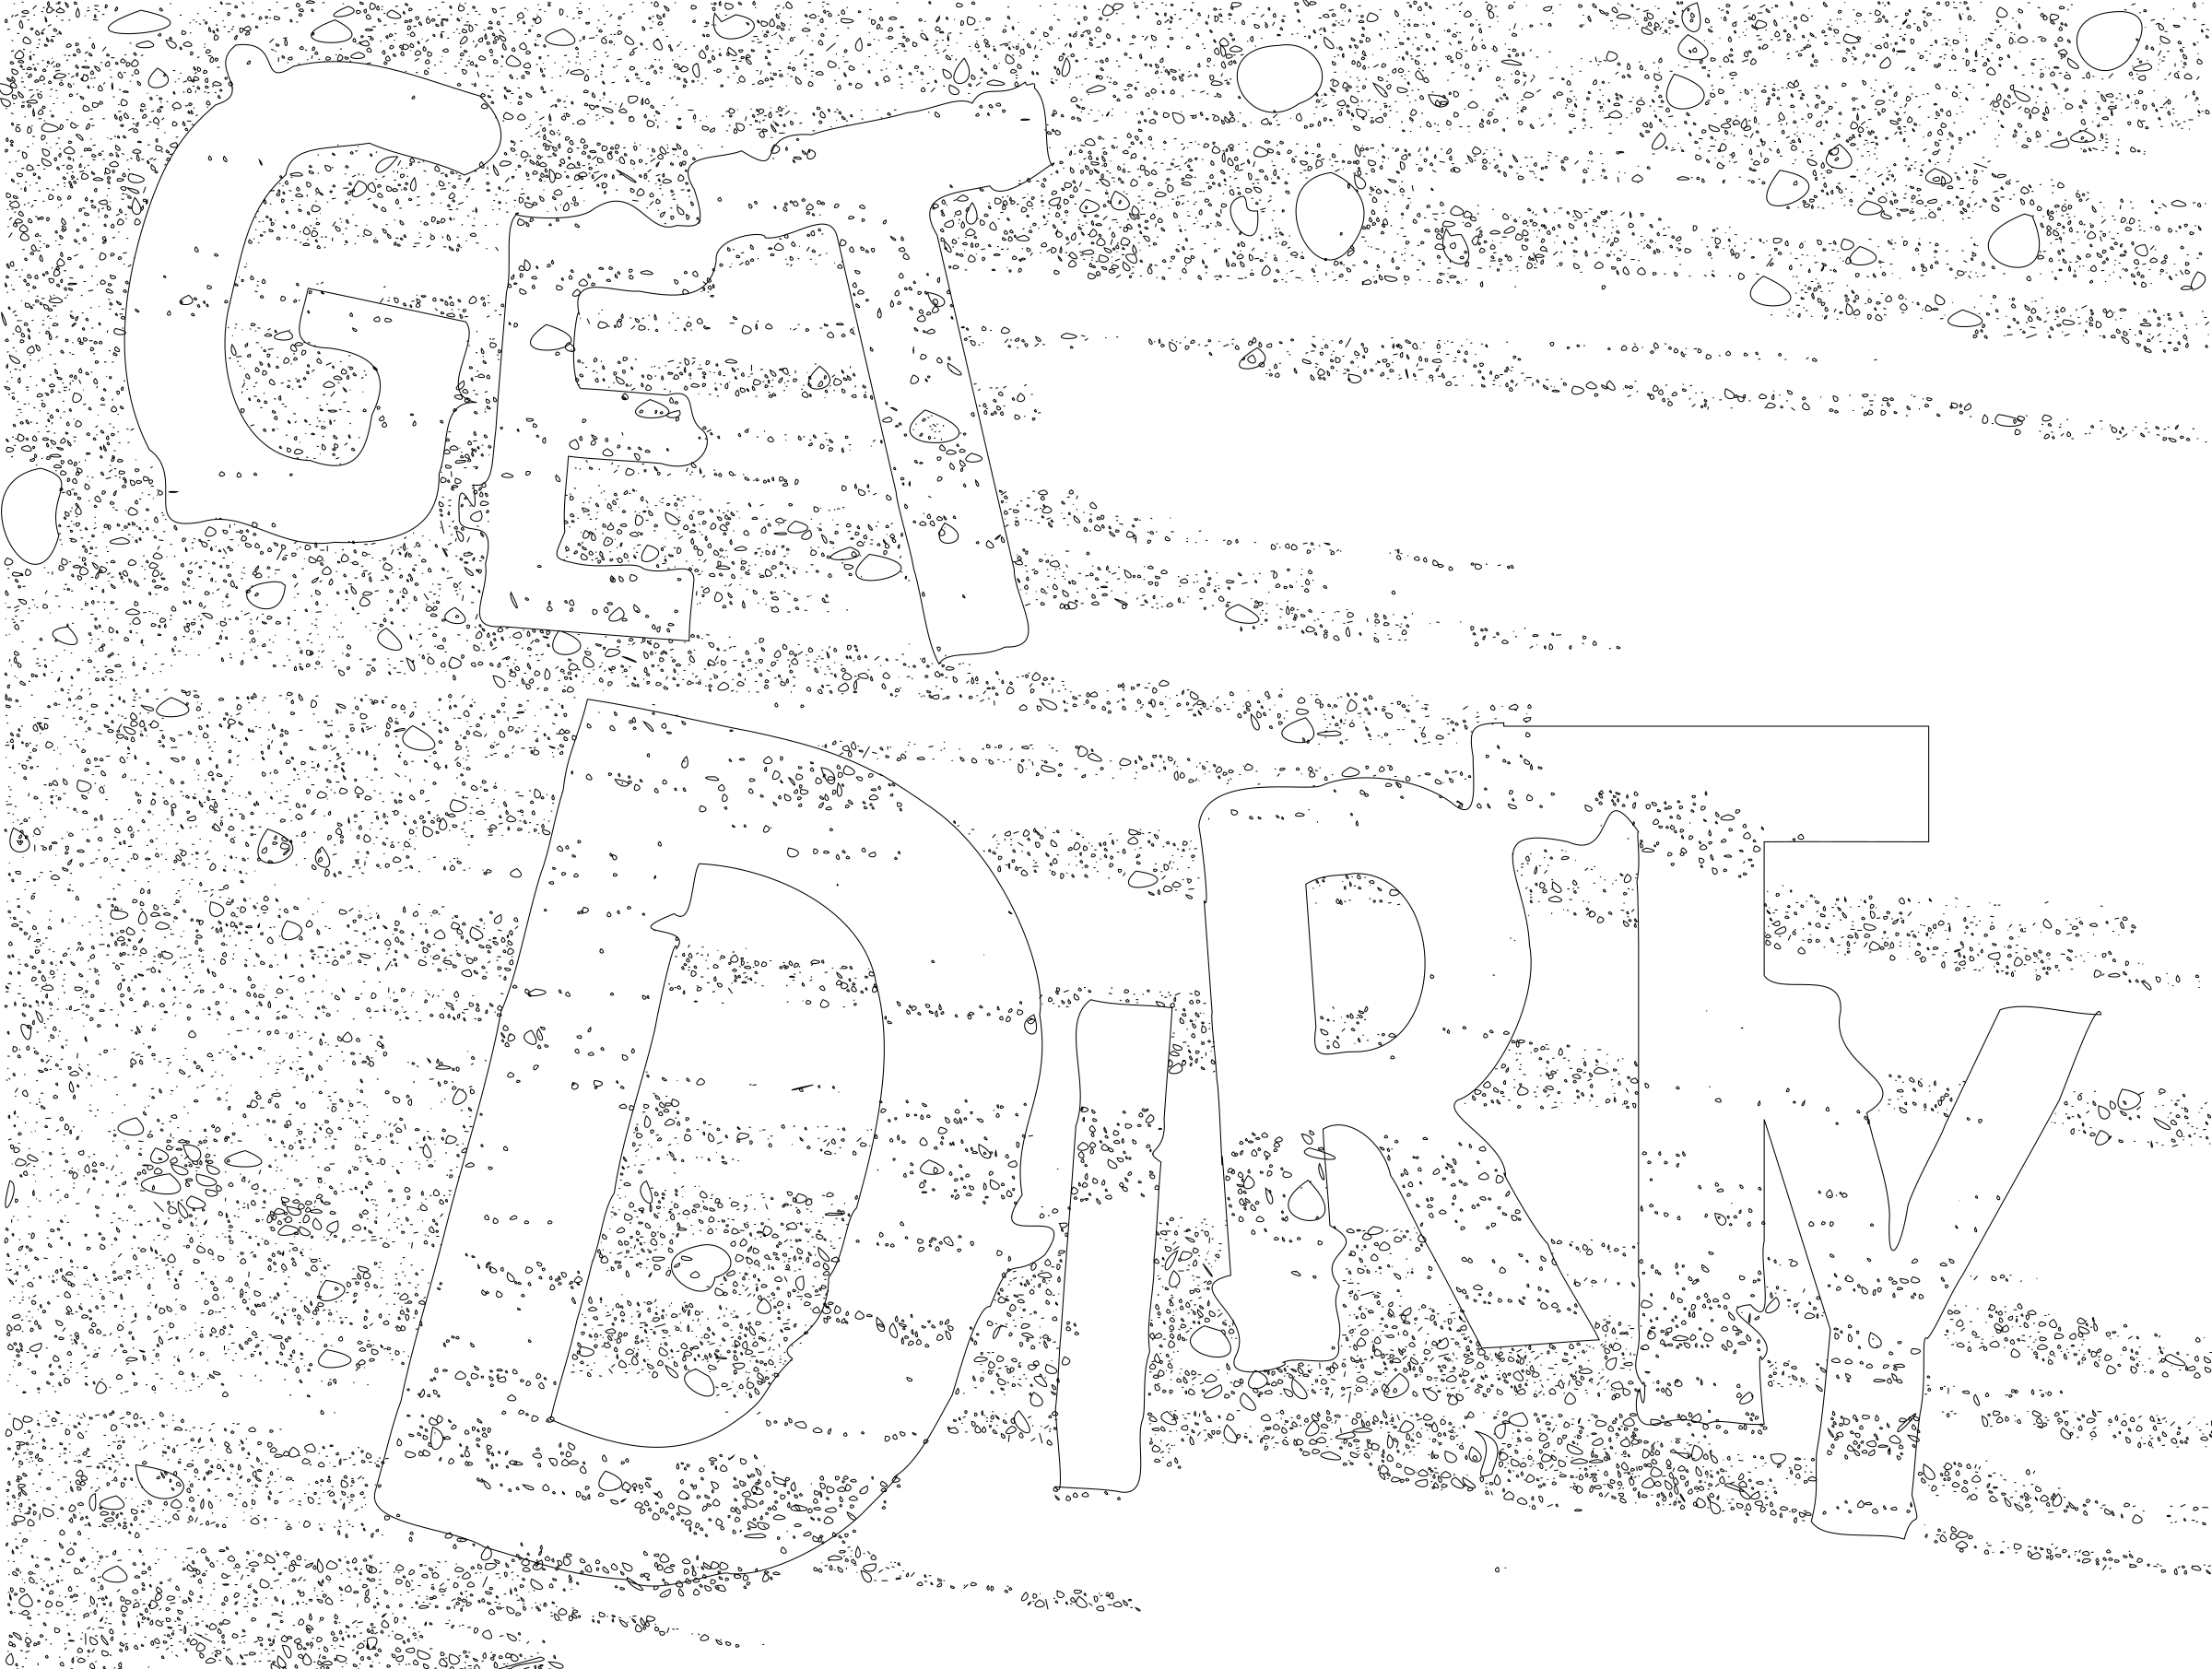 Dust clipart dirt. Get dirty example text